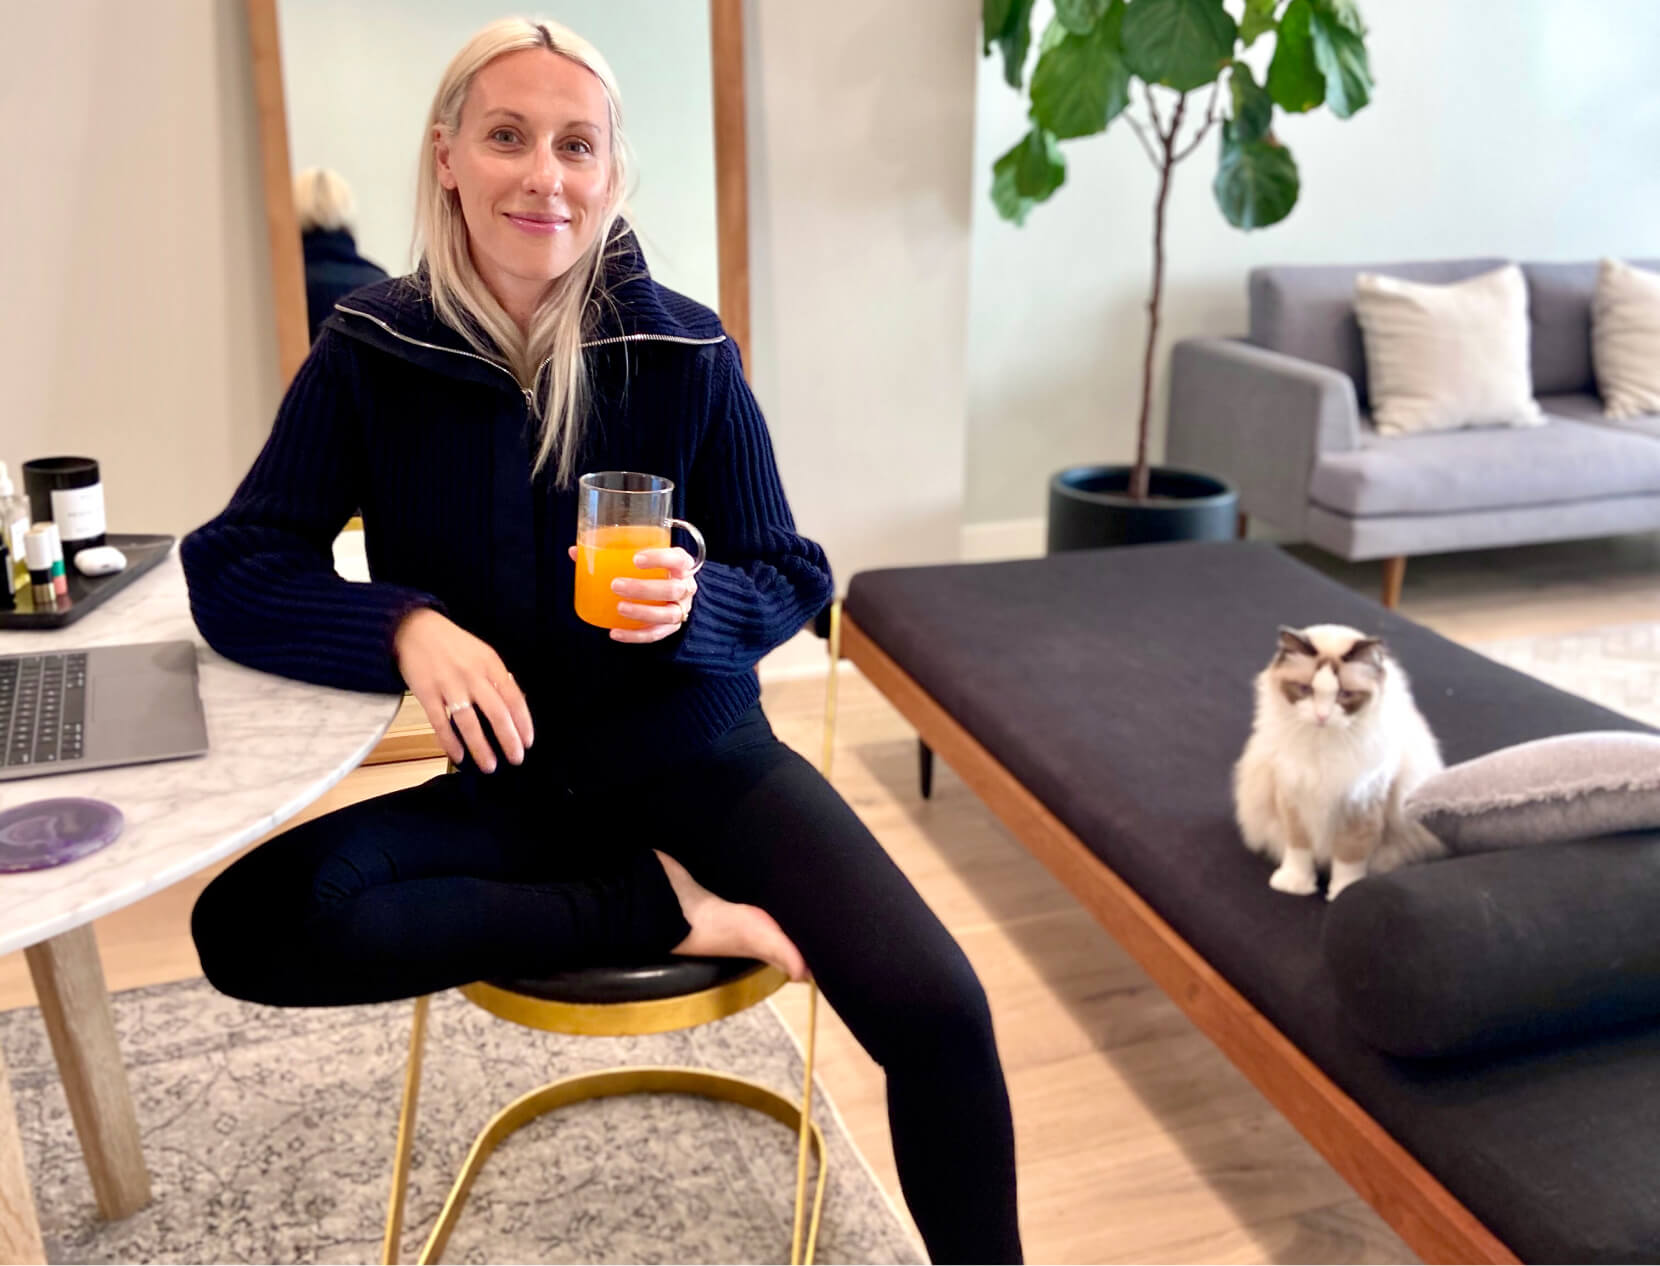 ali pew holding a glass of juice